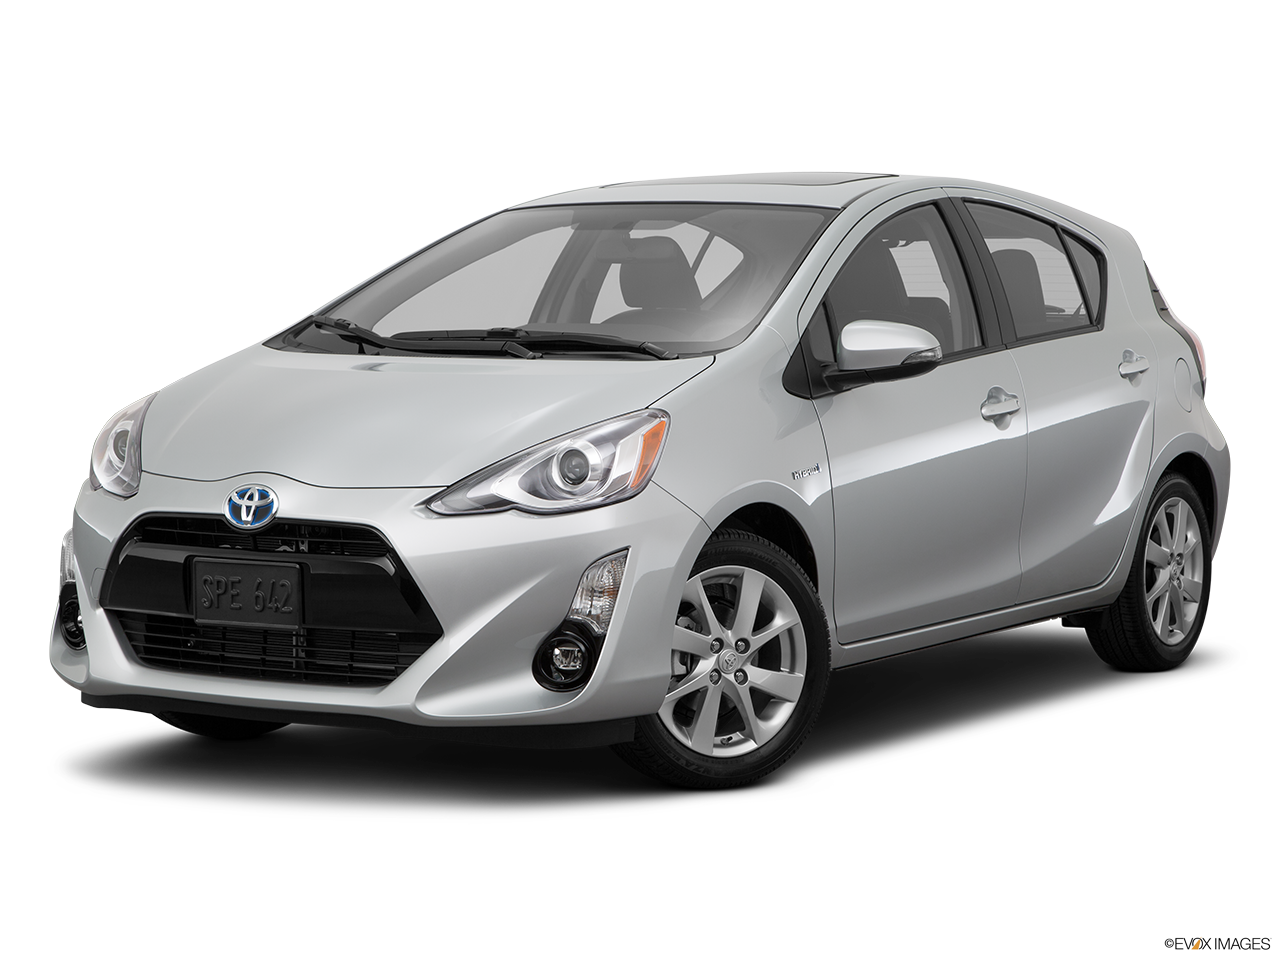 2015 toyota prius c dealer serving los angeles toyota of glendale